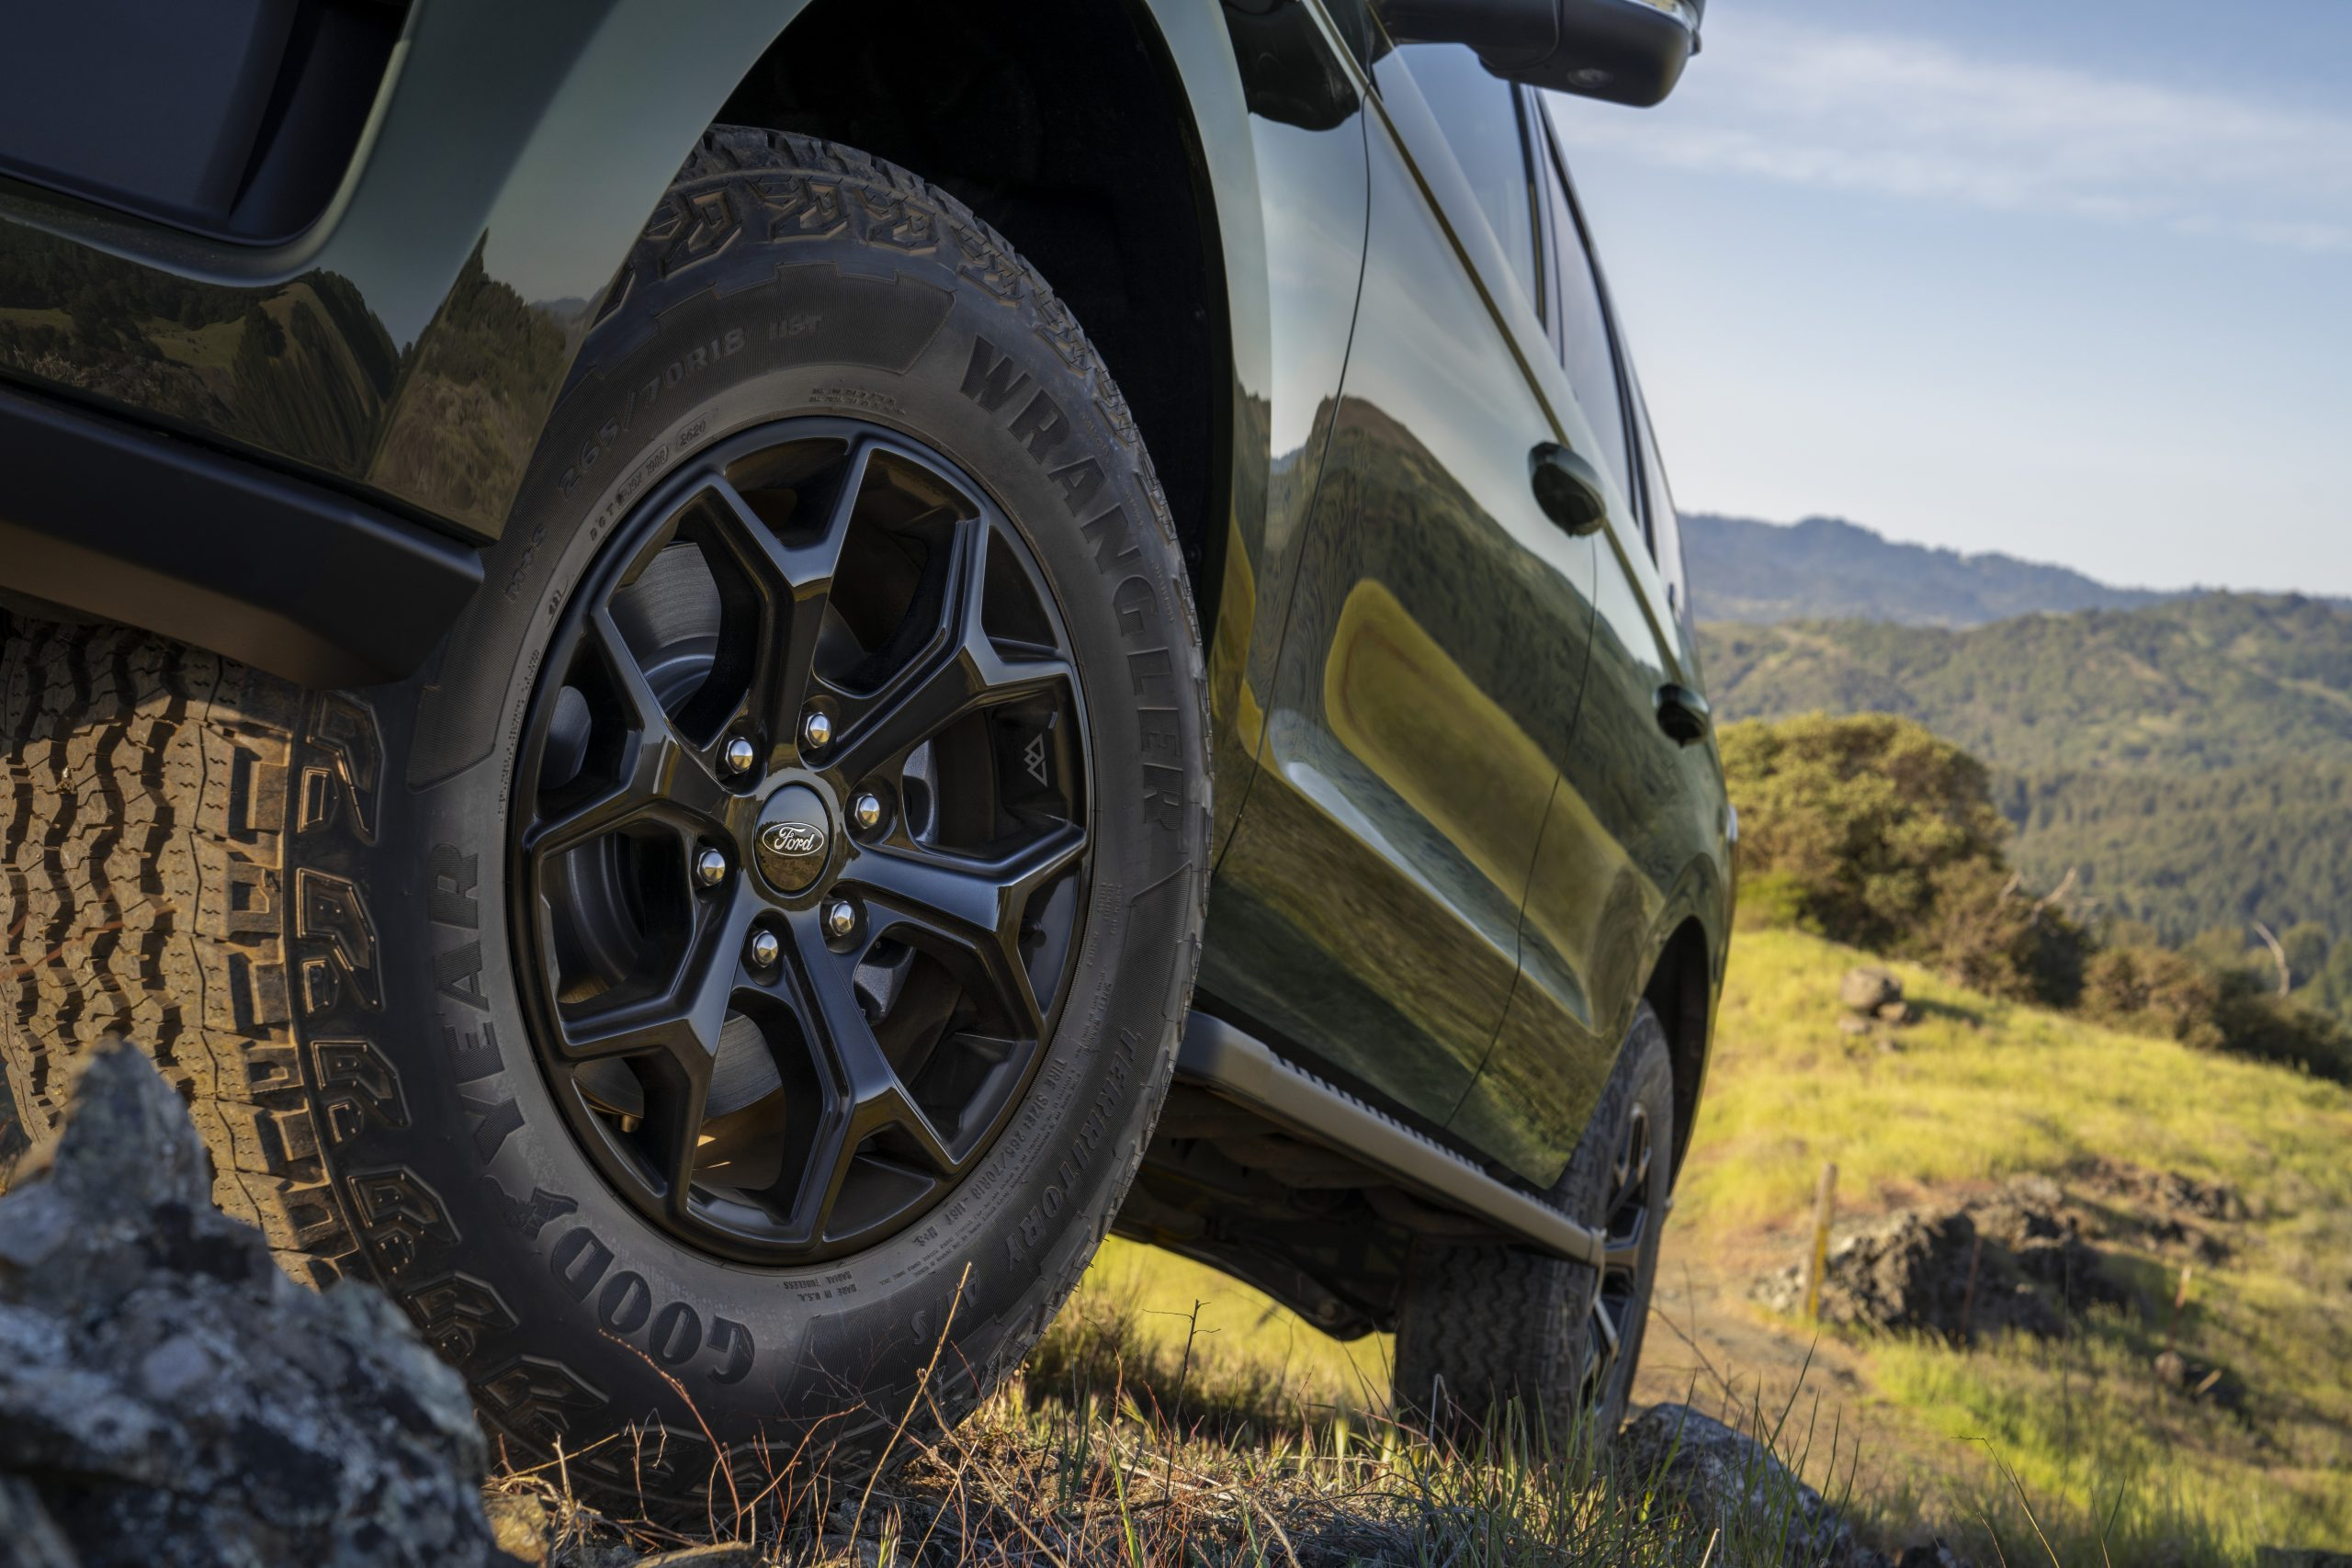 2022 Ford Expedition Timberline off-road tires